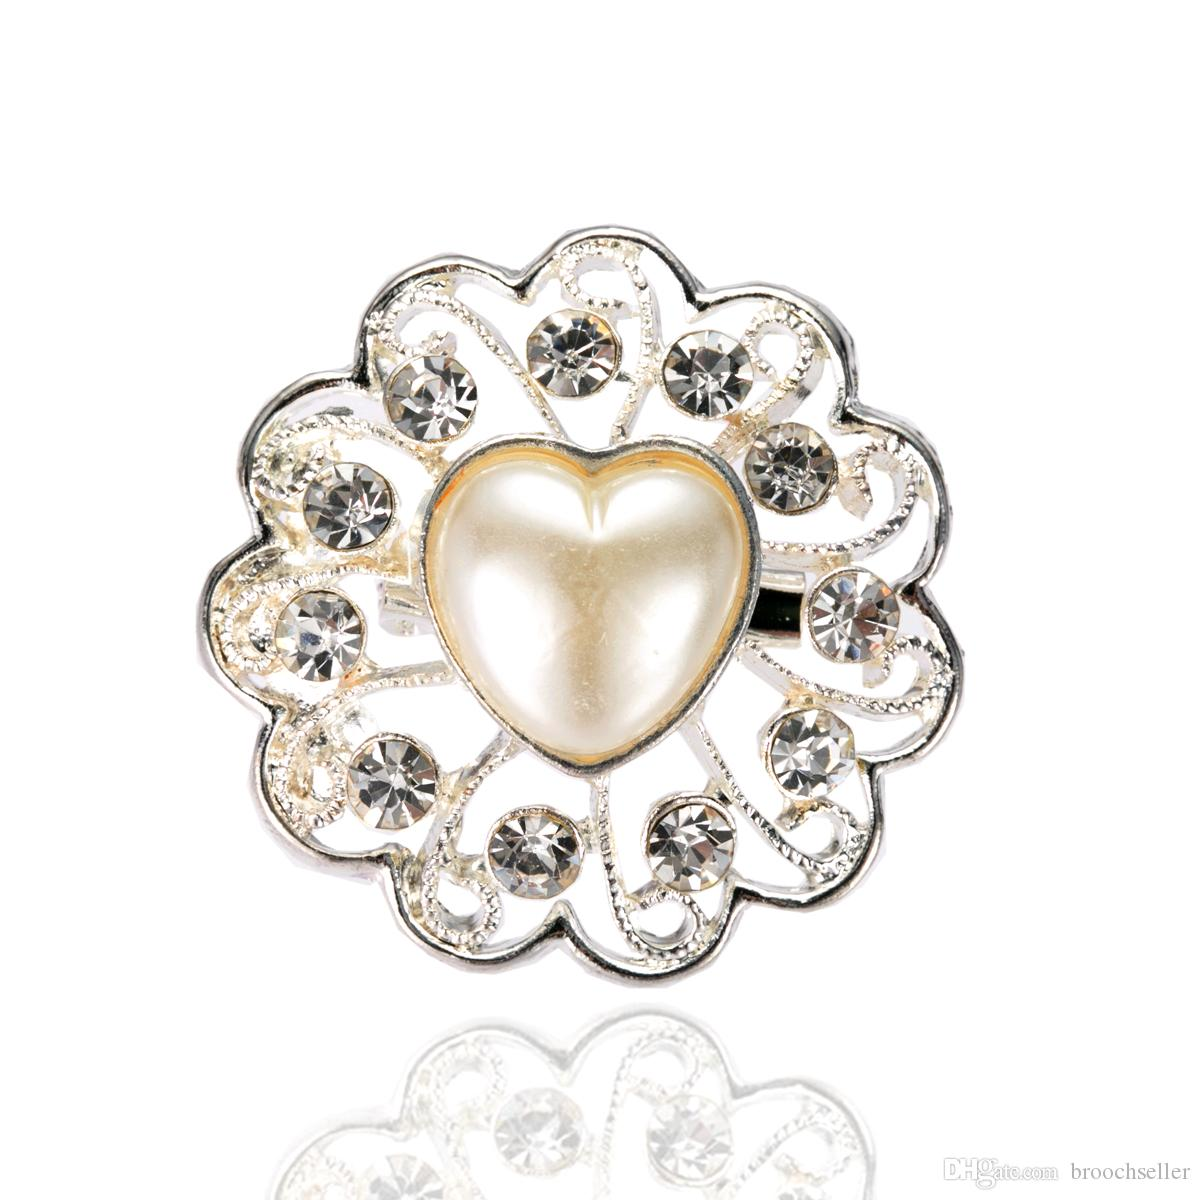 1.4 Inch Silver Plated Heart Shaped Pearl and Rhinestone Flower Brooch